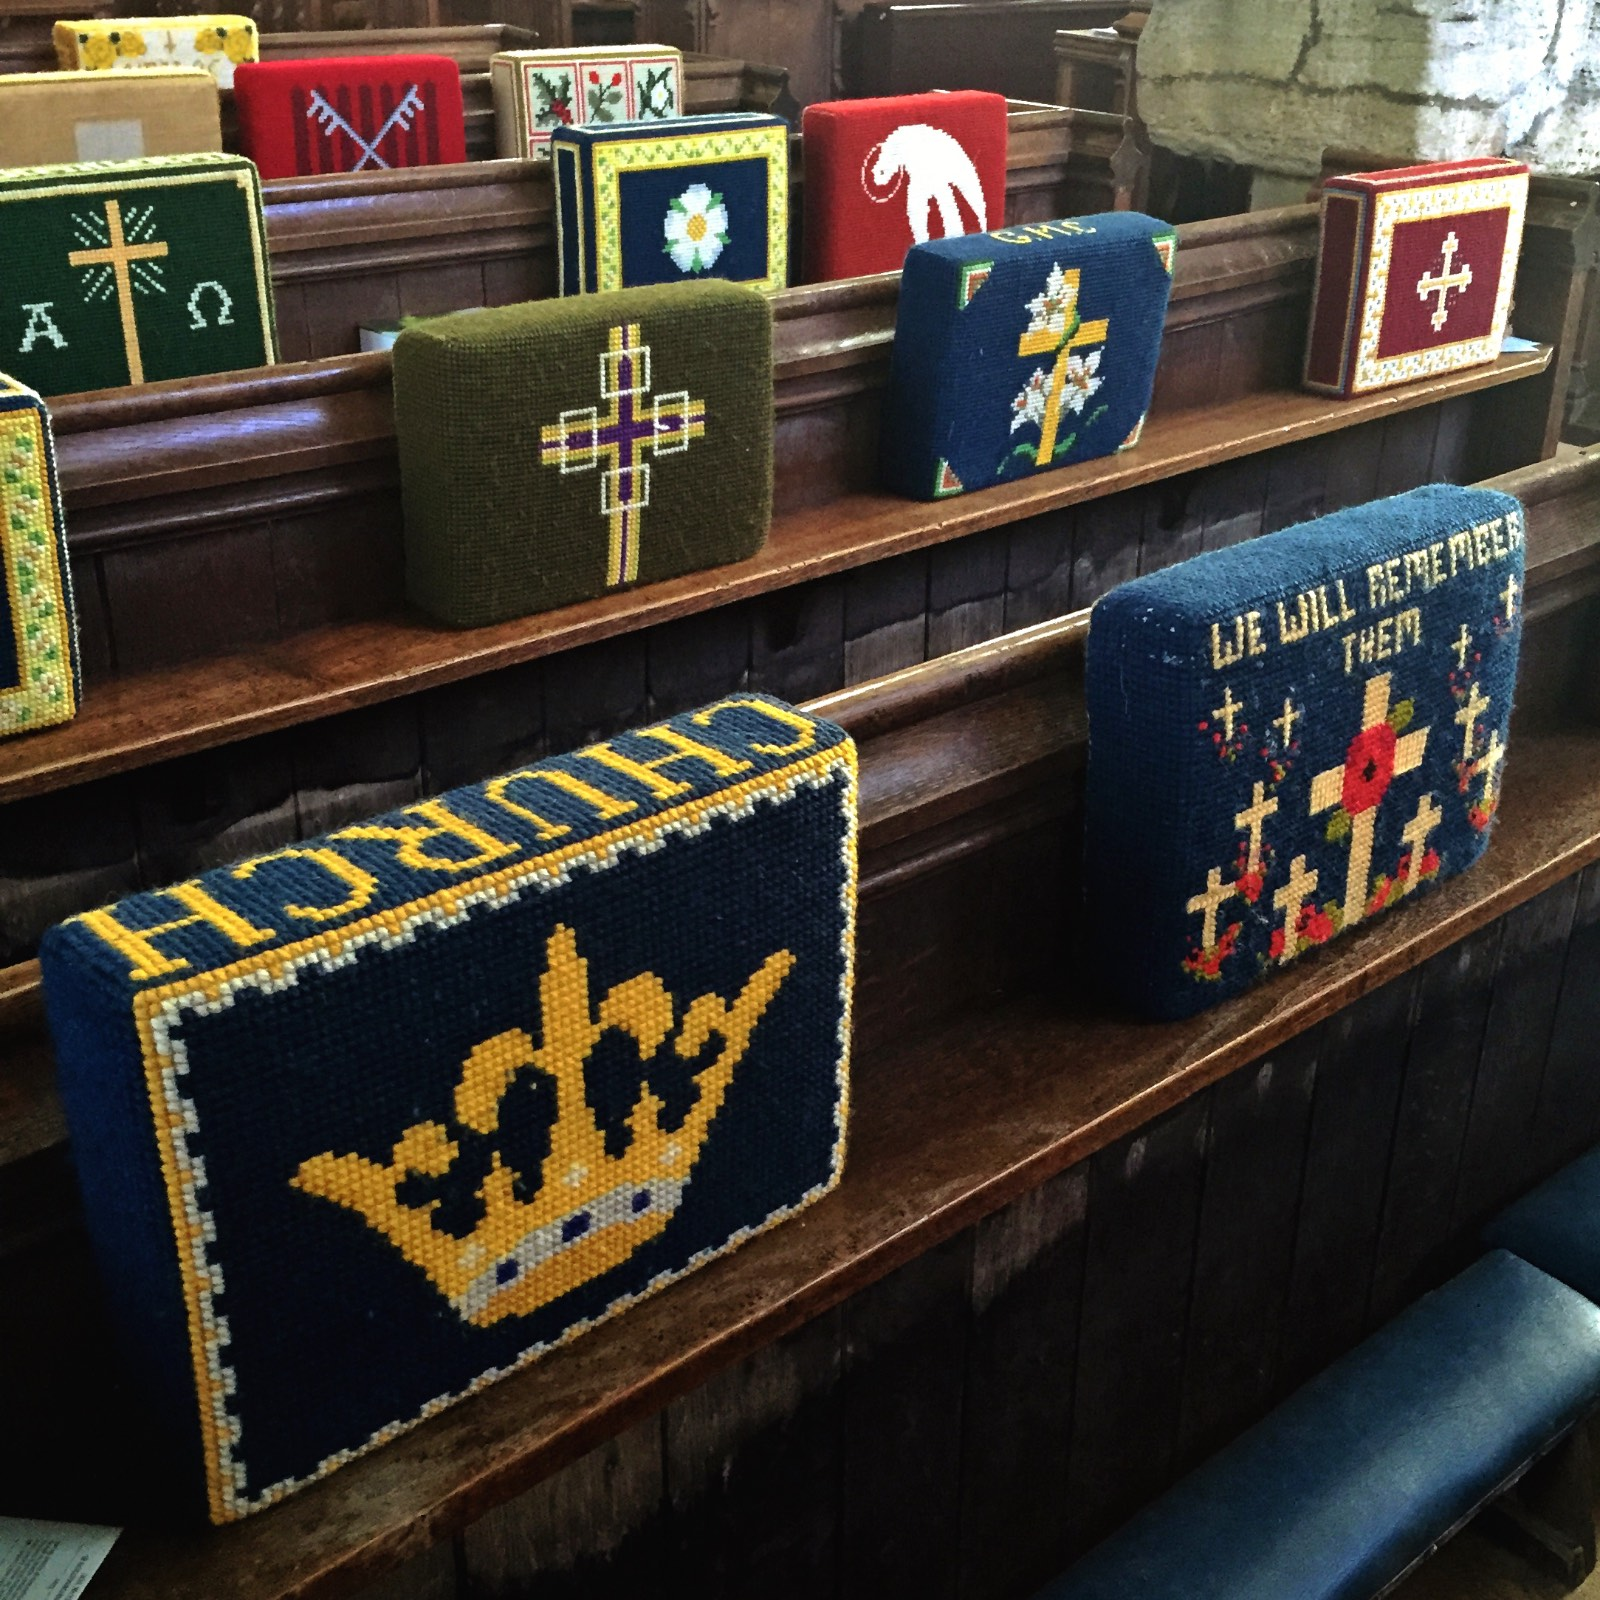 Kneeling pillows in church